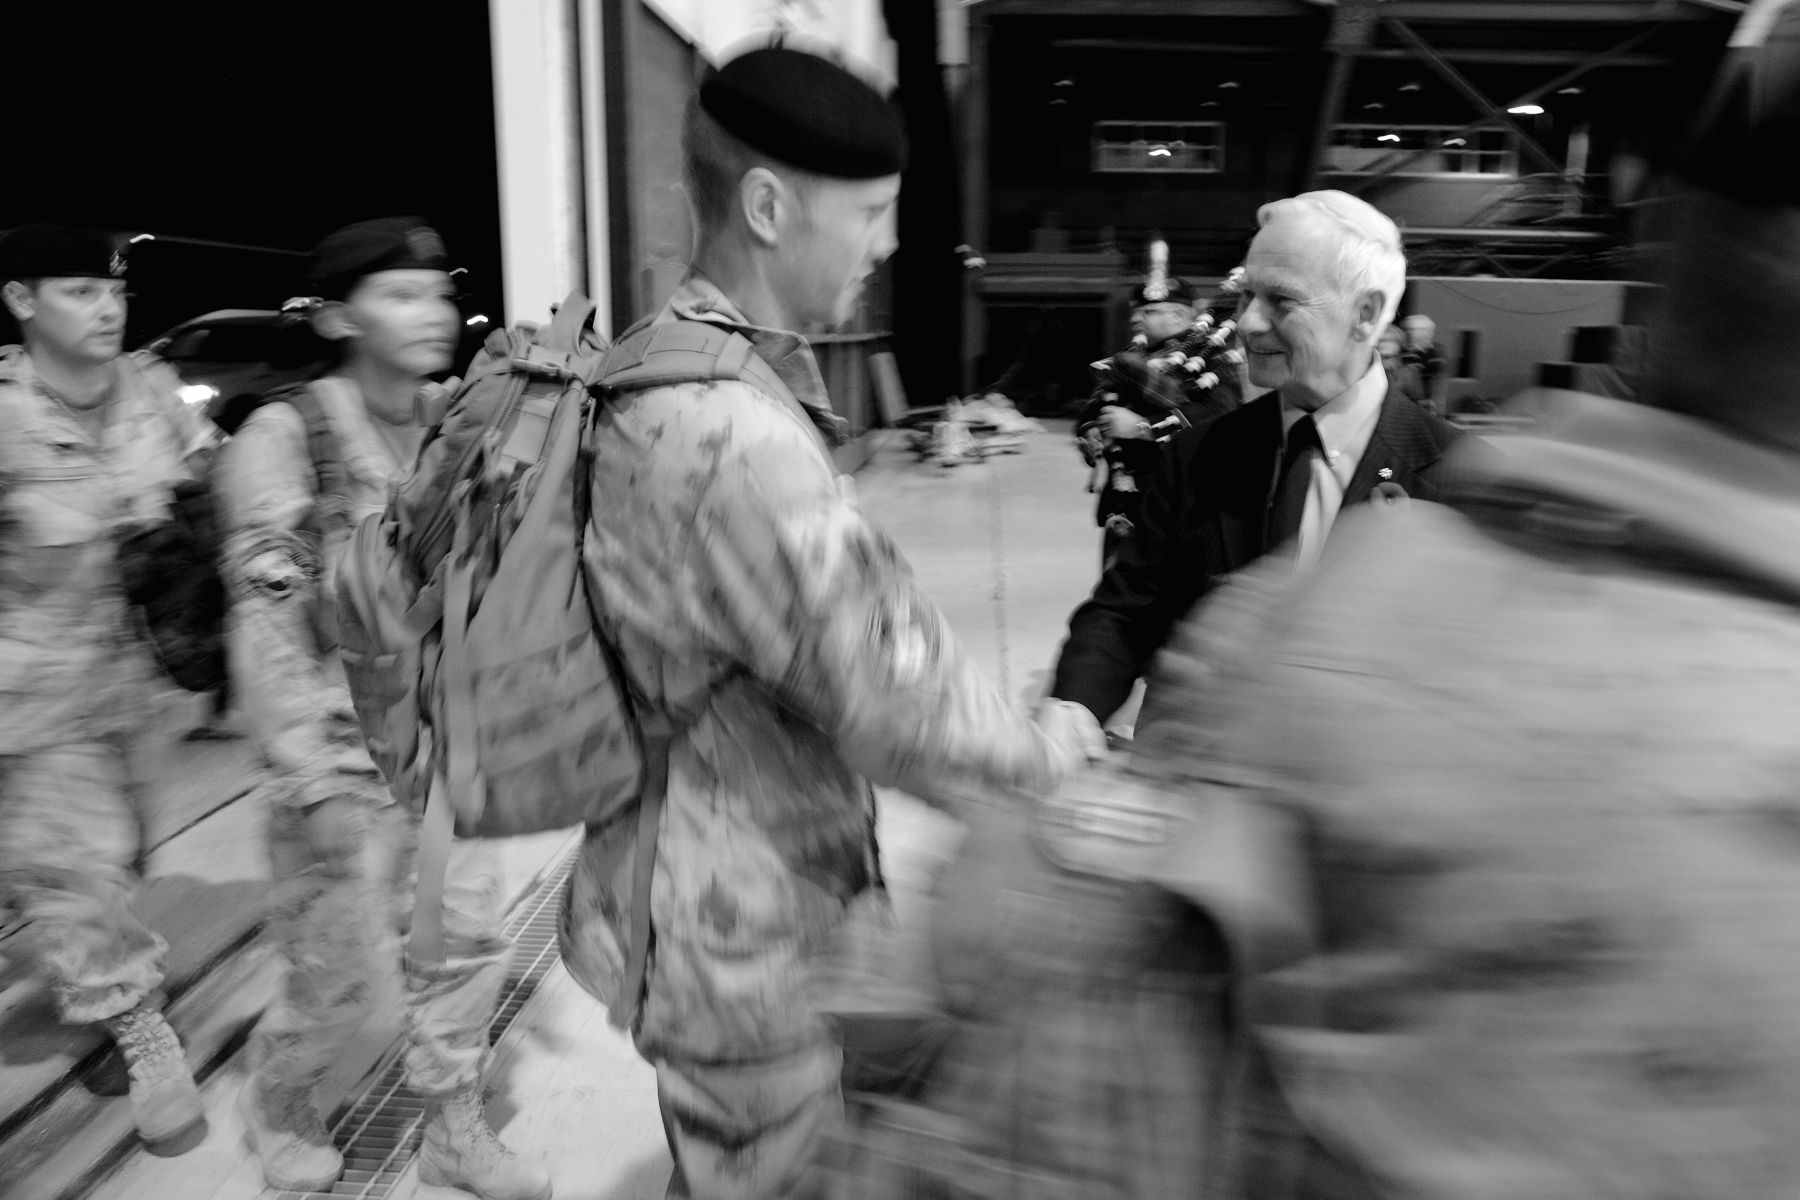 The first group of 120 military troops returning from Afghasitan arrived at the Canada Reception Centre at the beginning of the evening.